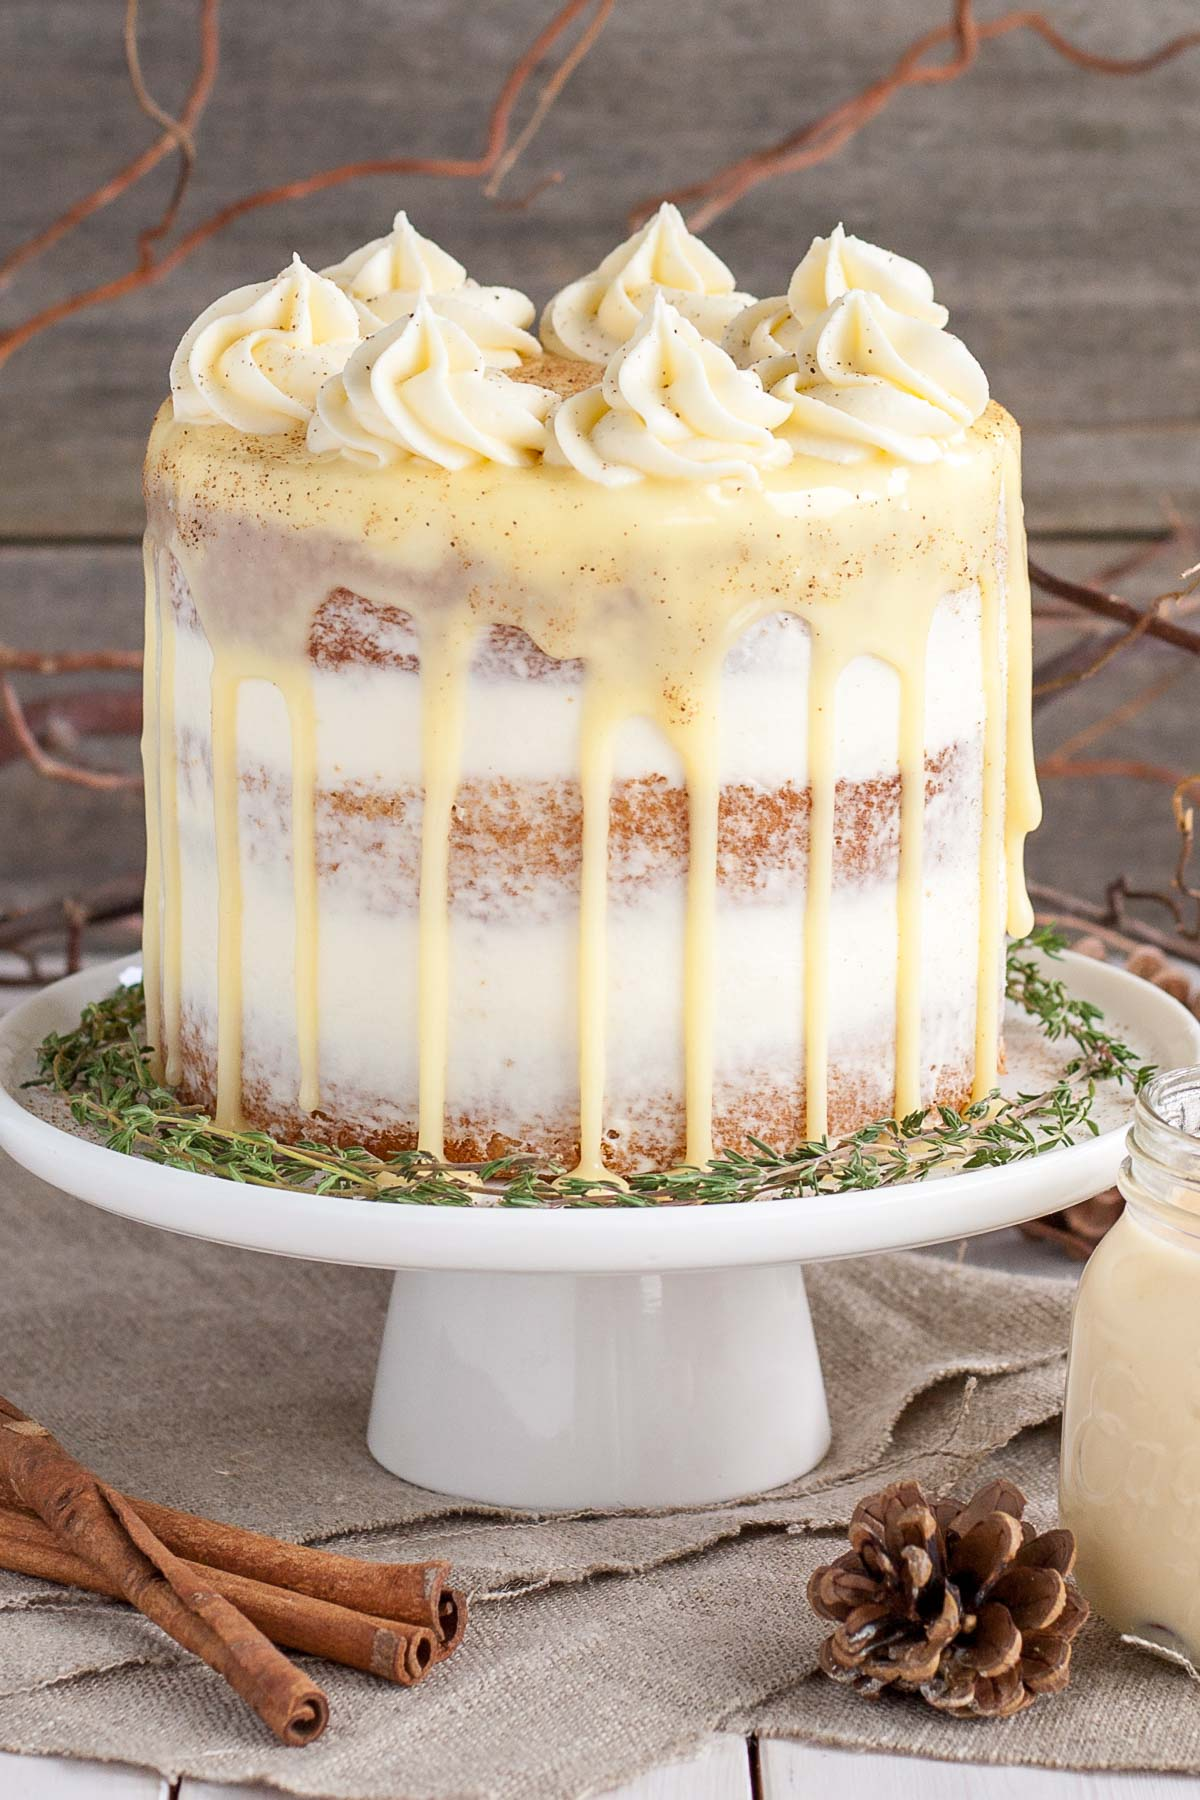 Eggnog cake with cream cheese frosting and white chocolate ganache.